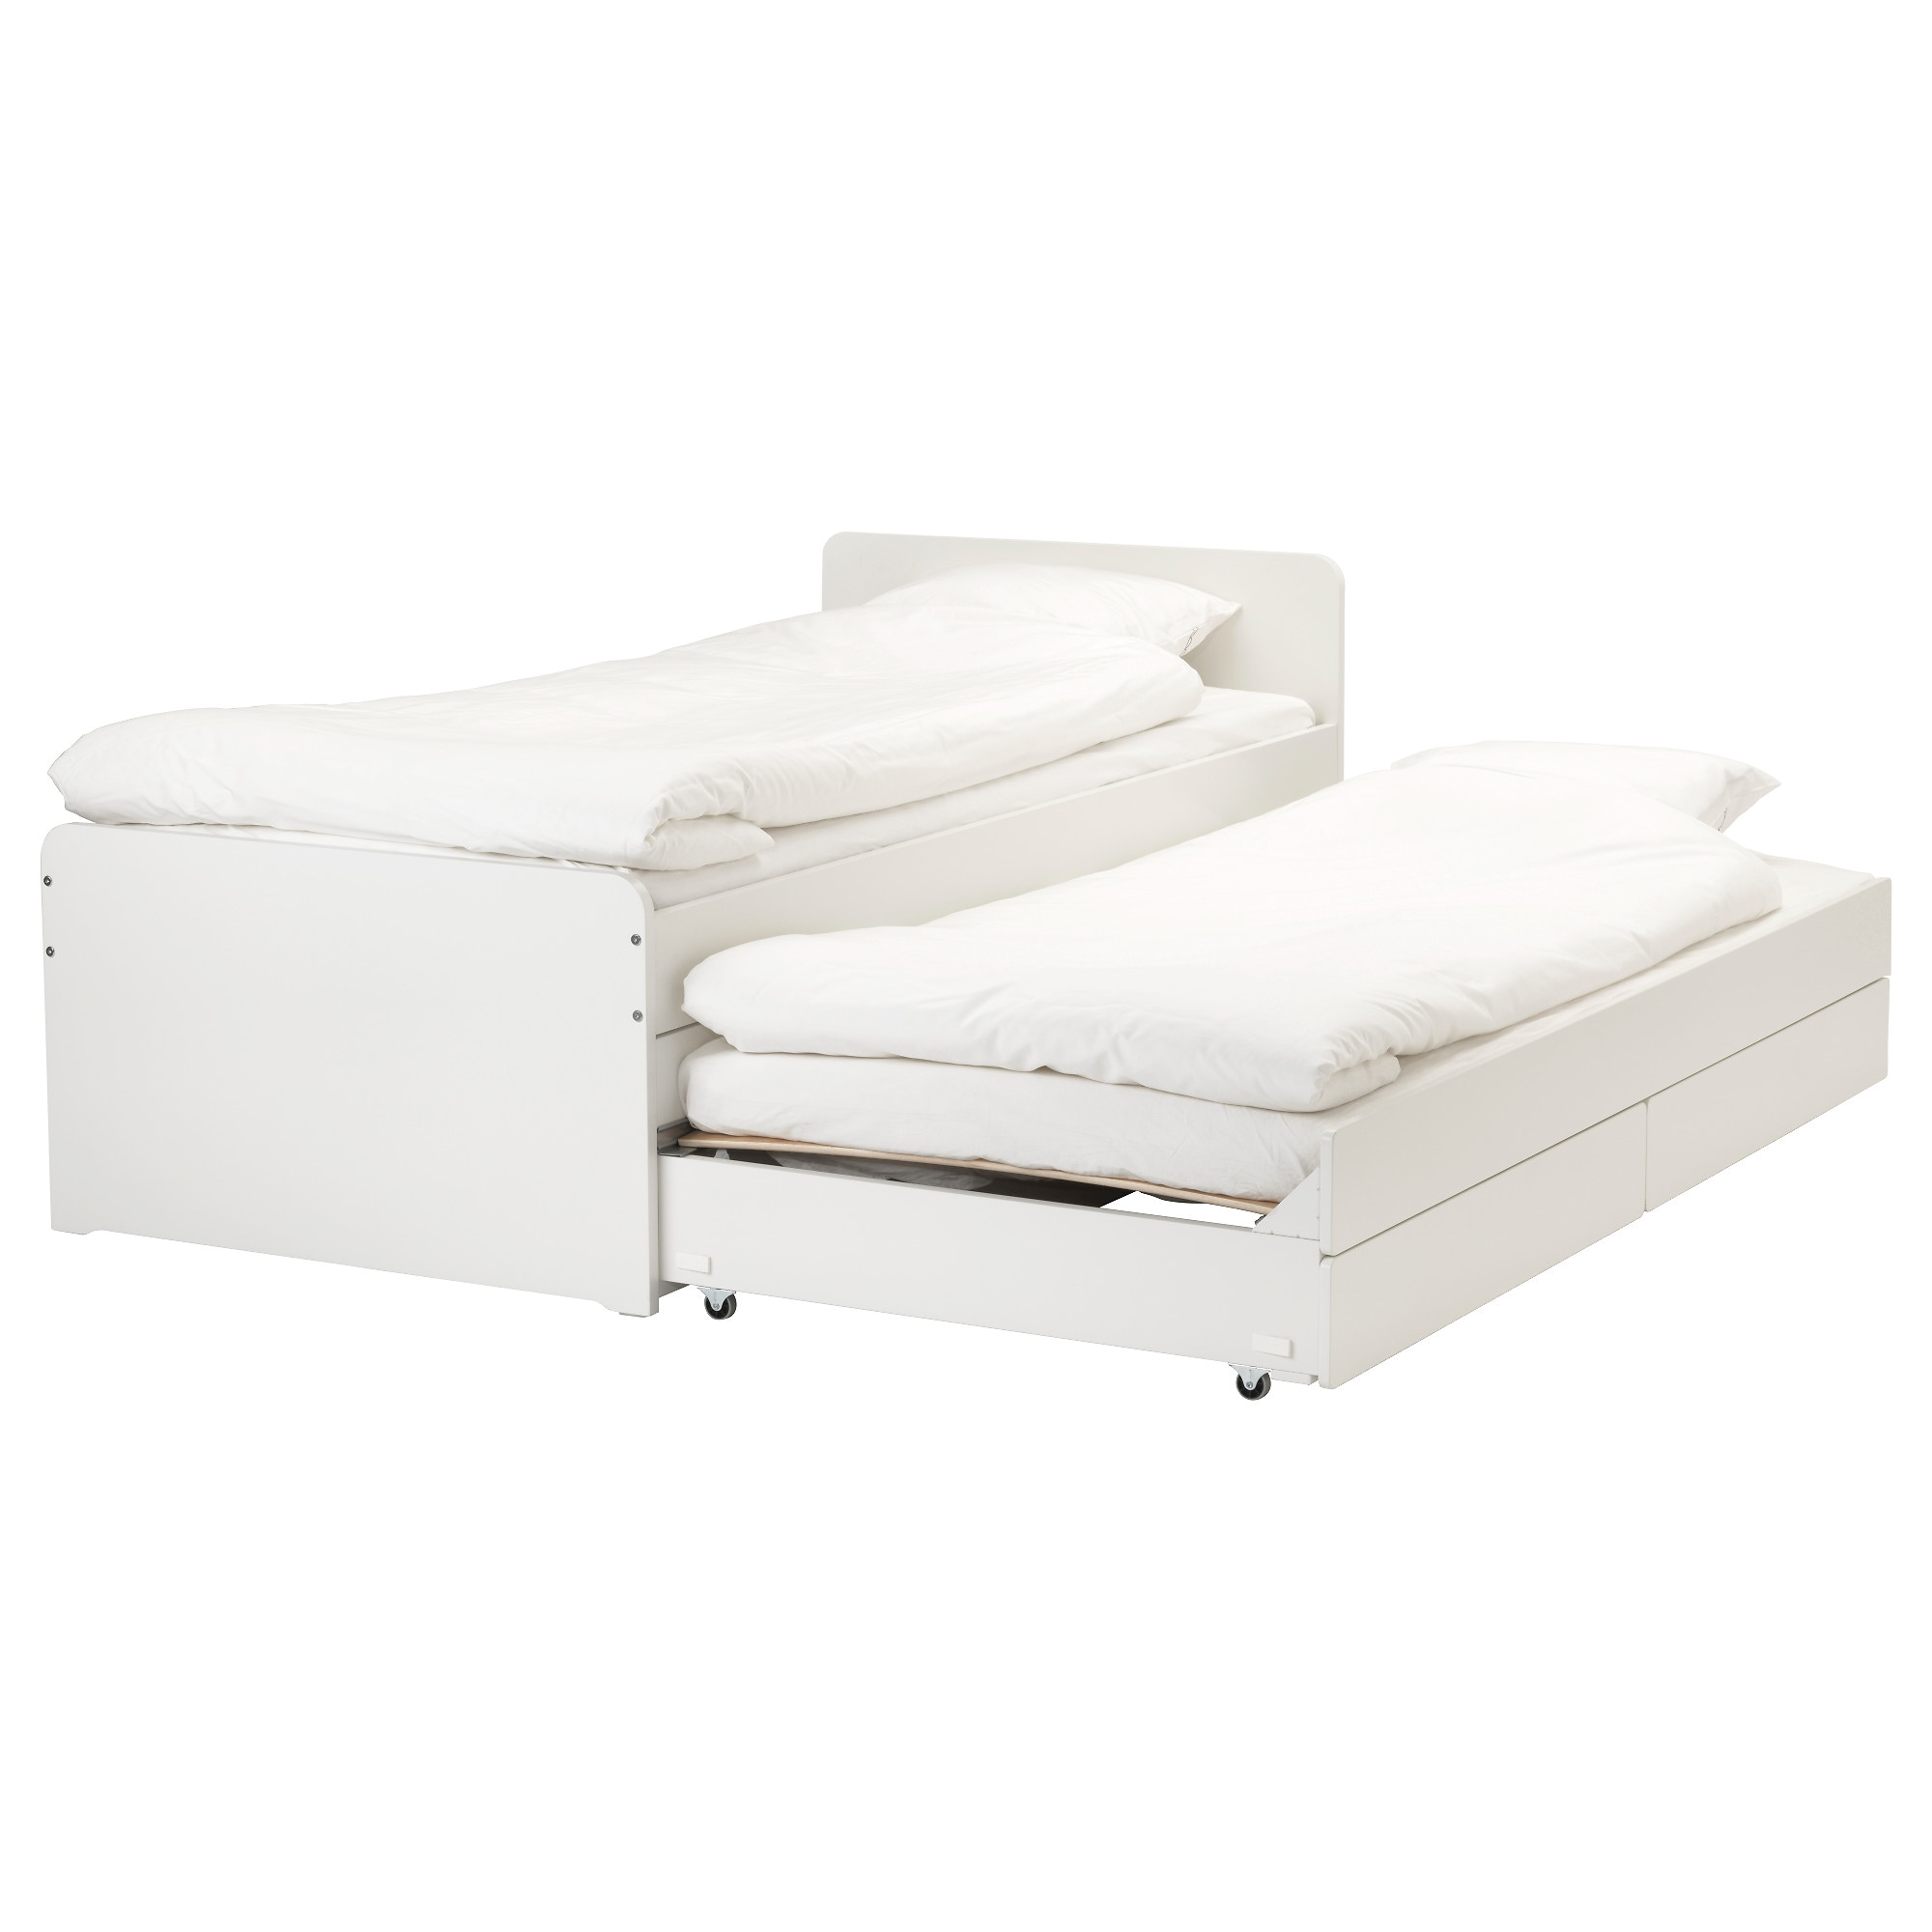 inter ikea systems bv 1999 2017 privacy policy - White Ikea Bed Frame